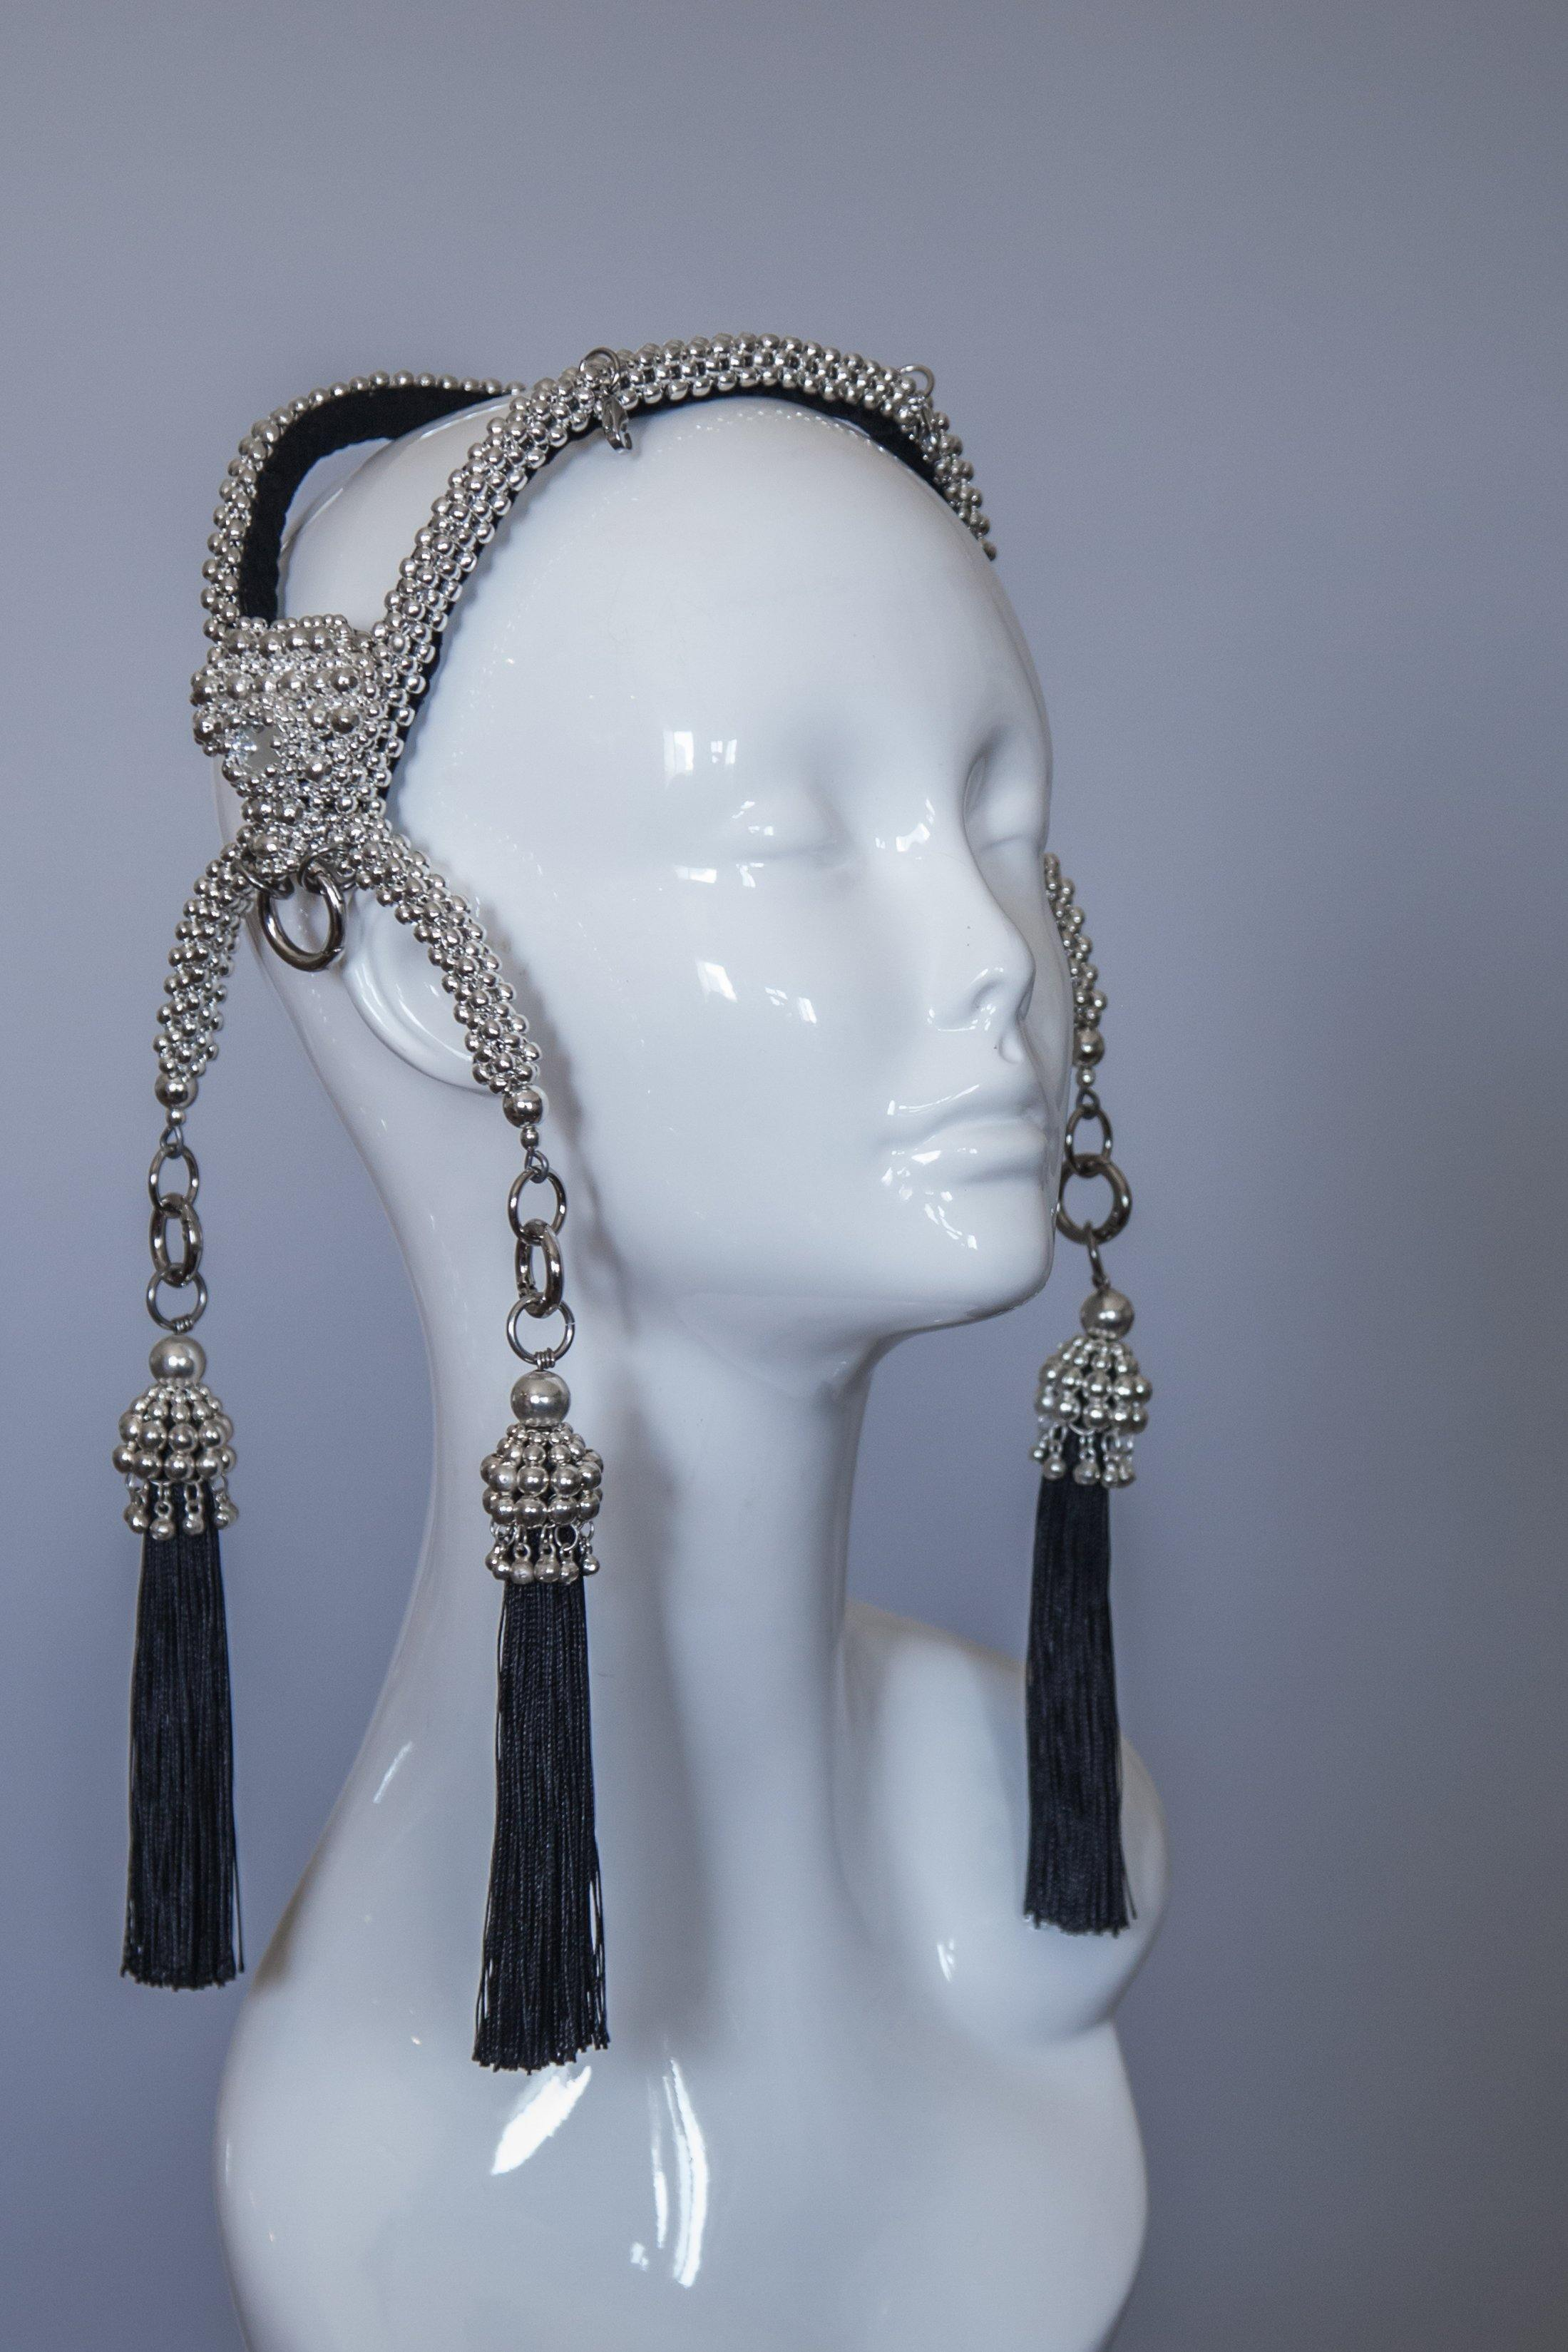 Khutulun Modular Headpiece System with 4 Blk Tassels & Face Bar